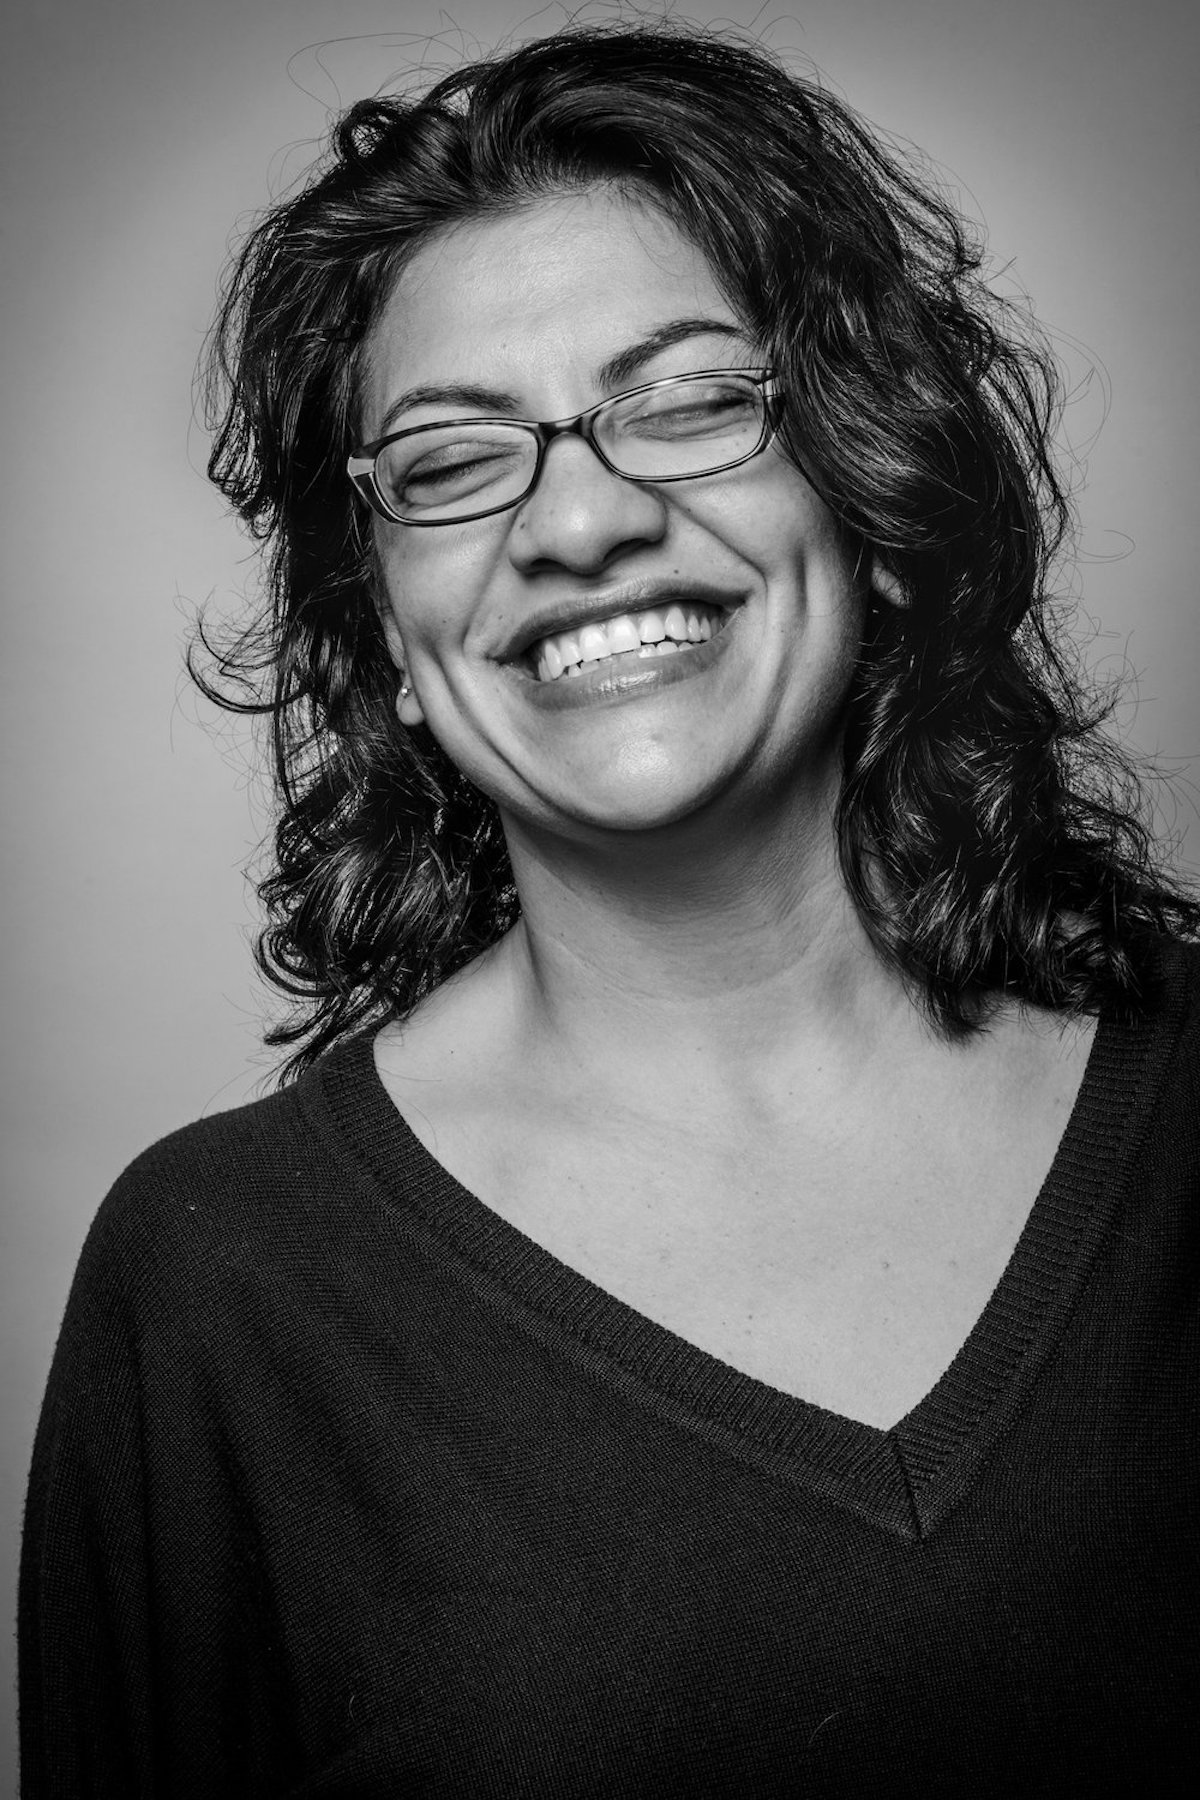 Rashida Tlaib, Ilhan Omar, African American Vote, Black Vote, African American Politics, Black Politics, The FIVE FIFTHS, TheFIVEFIFTHS, KOLUMN Magazine, KOLUMN, Willoughby Avenue